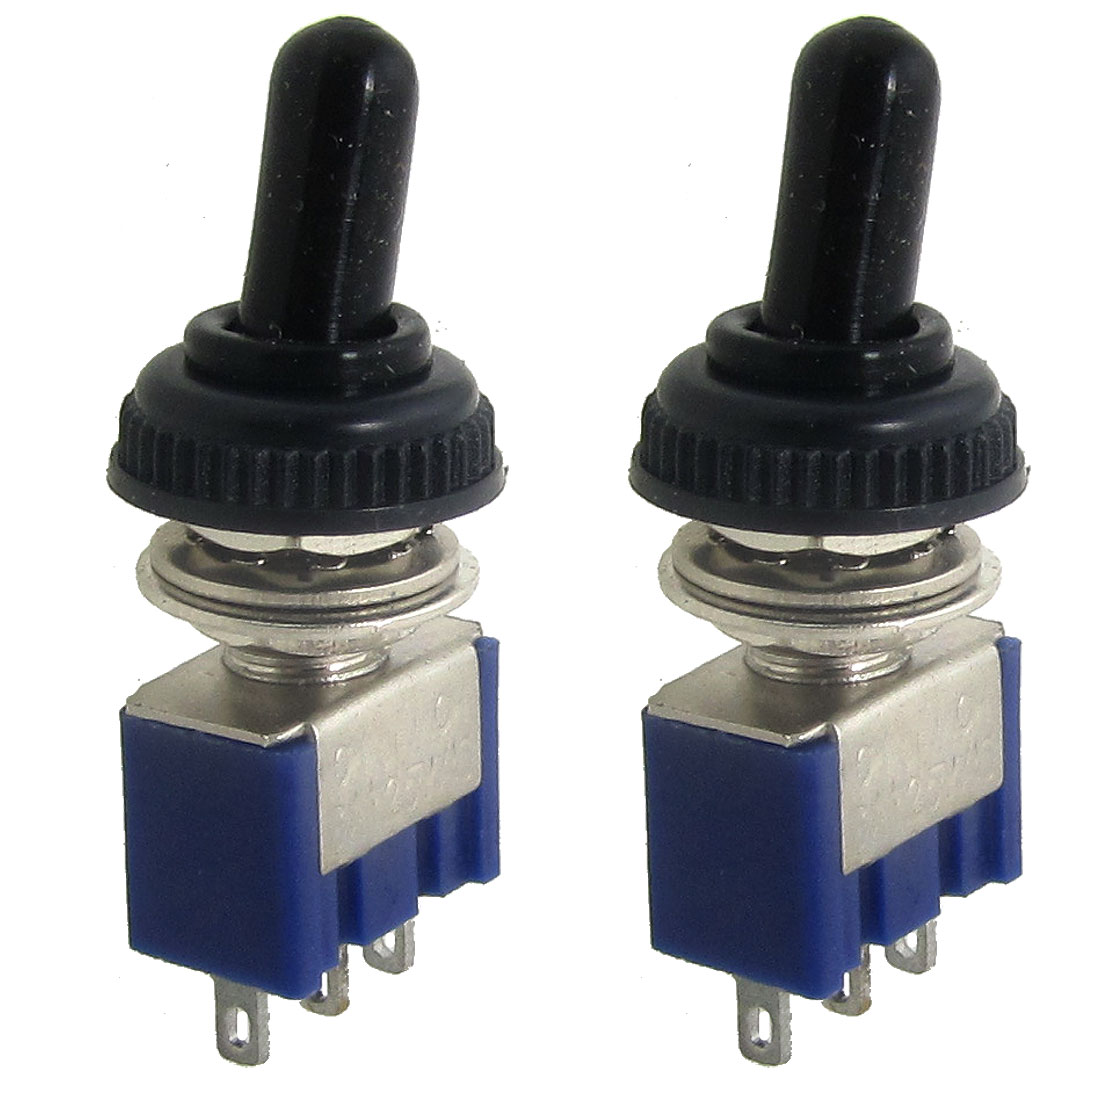 2 Pcs AC 125V 6A ON/ON 2 Position SPDT 3 Pins Mini Toggle Switch with Waterproof Boot